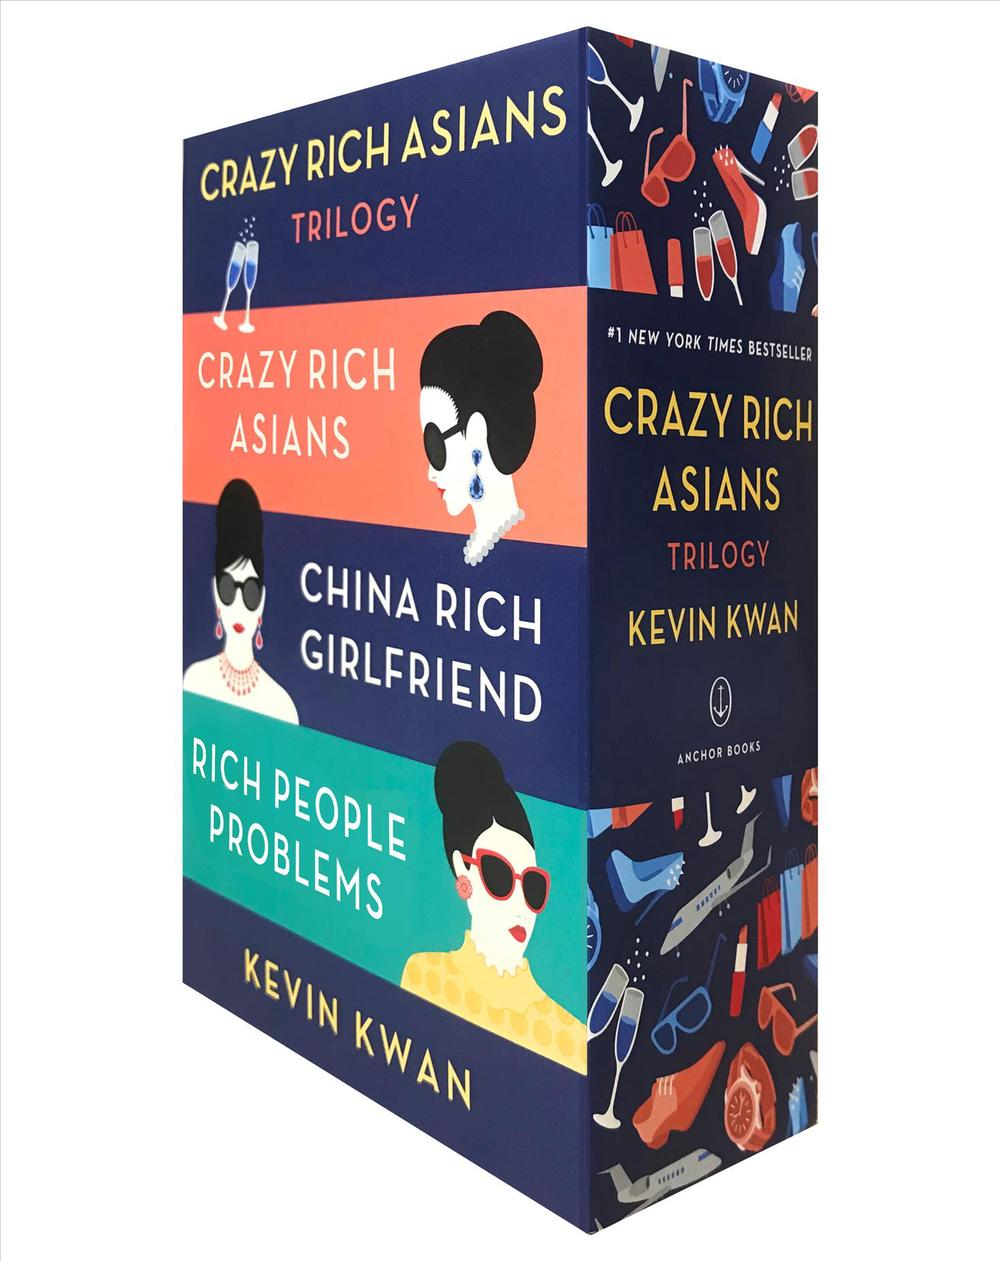 Crazy Rich Asians Trilogy Boxed Set